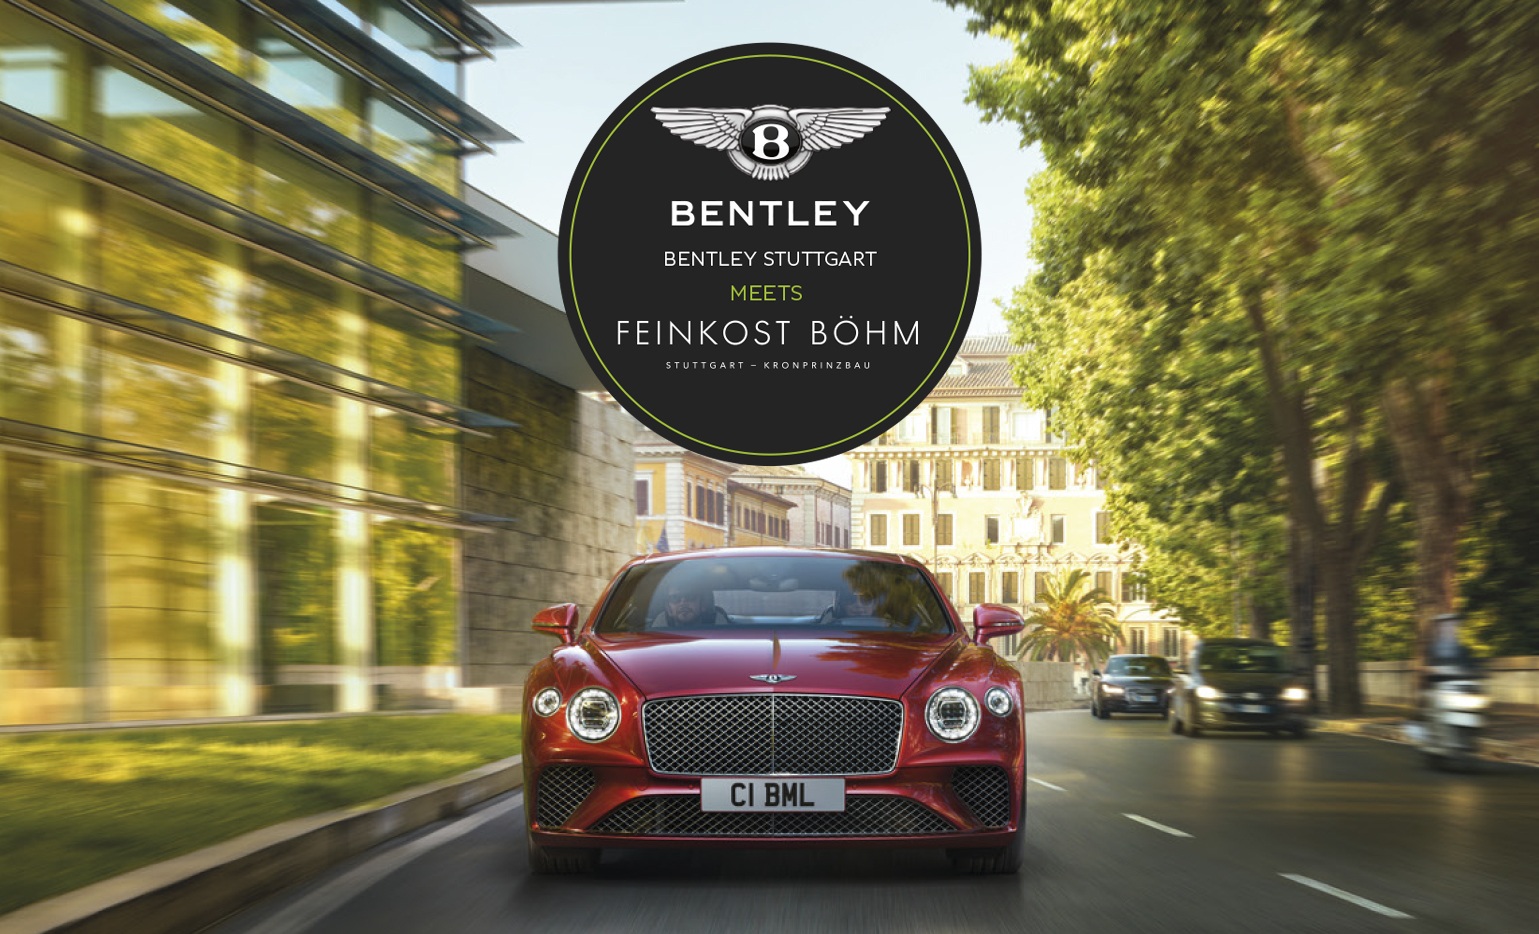 Bentley Stuttgart meets Feinkost Böhm